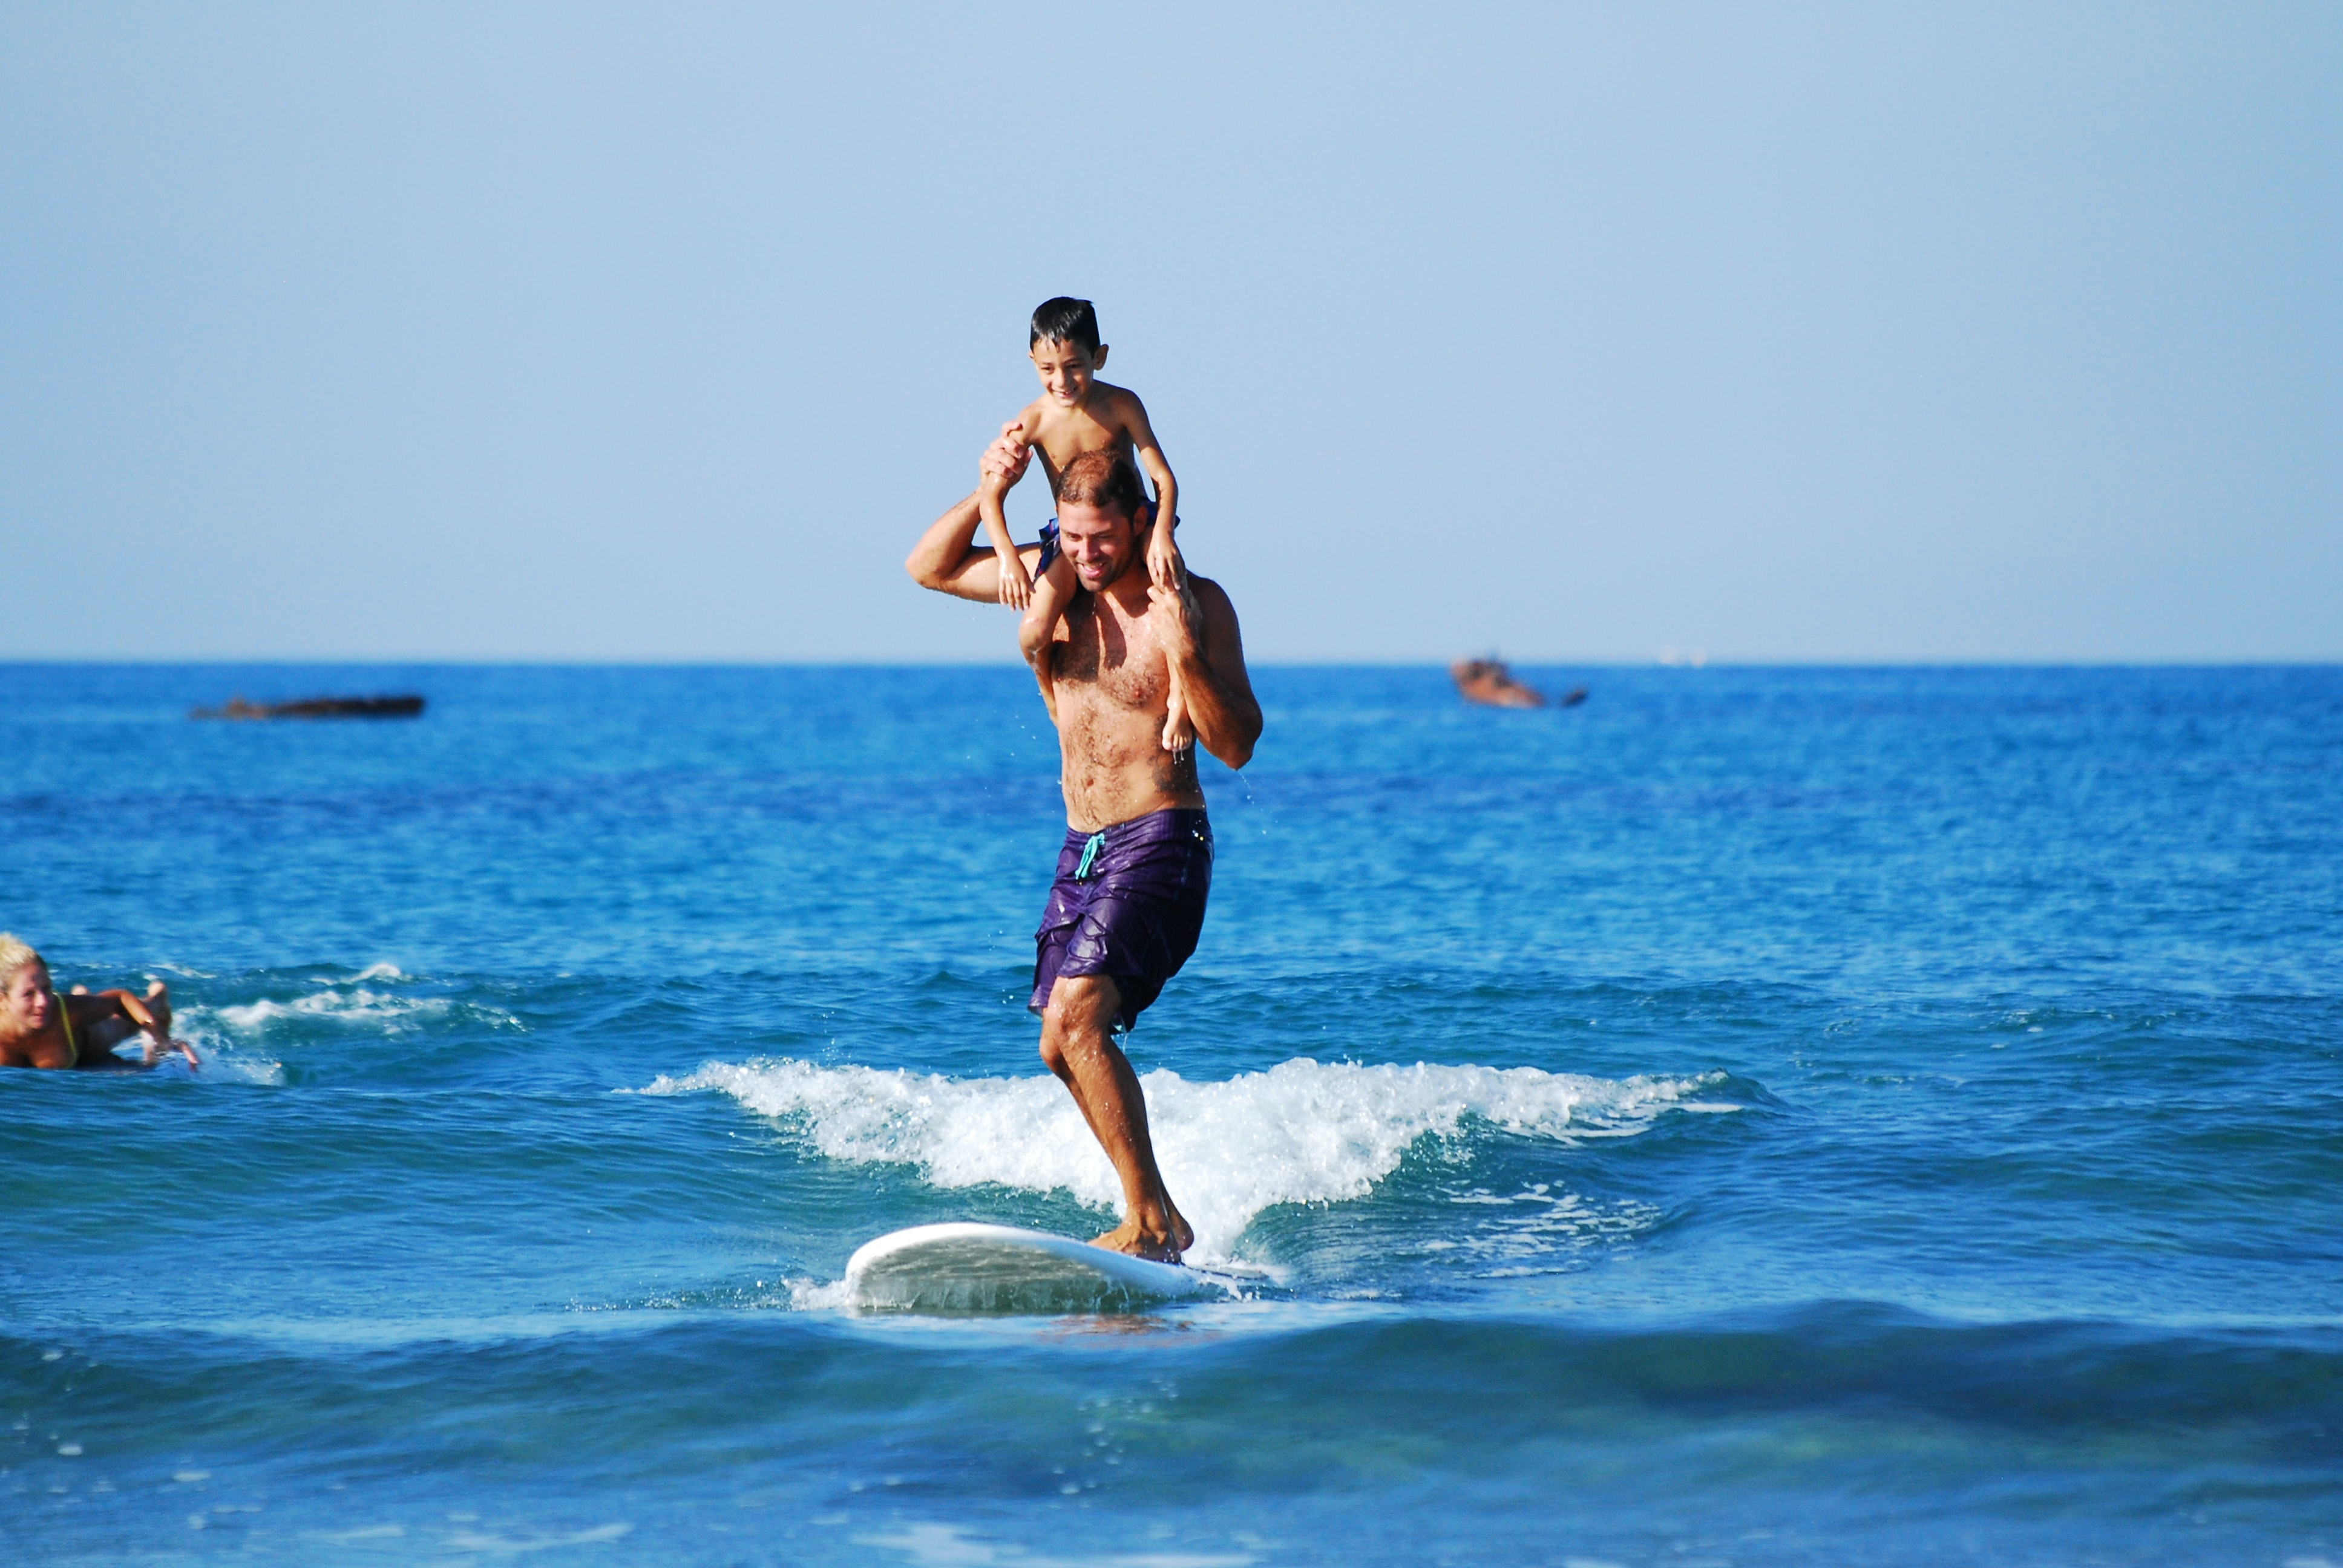 man surfing carrying boy